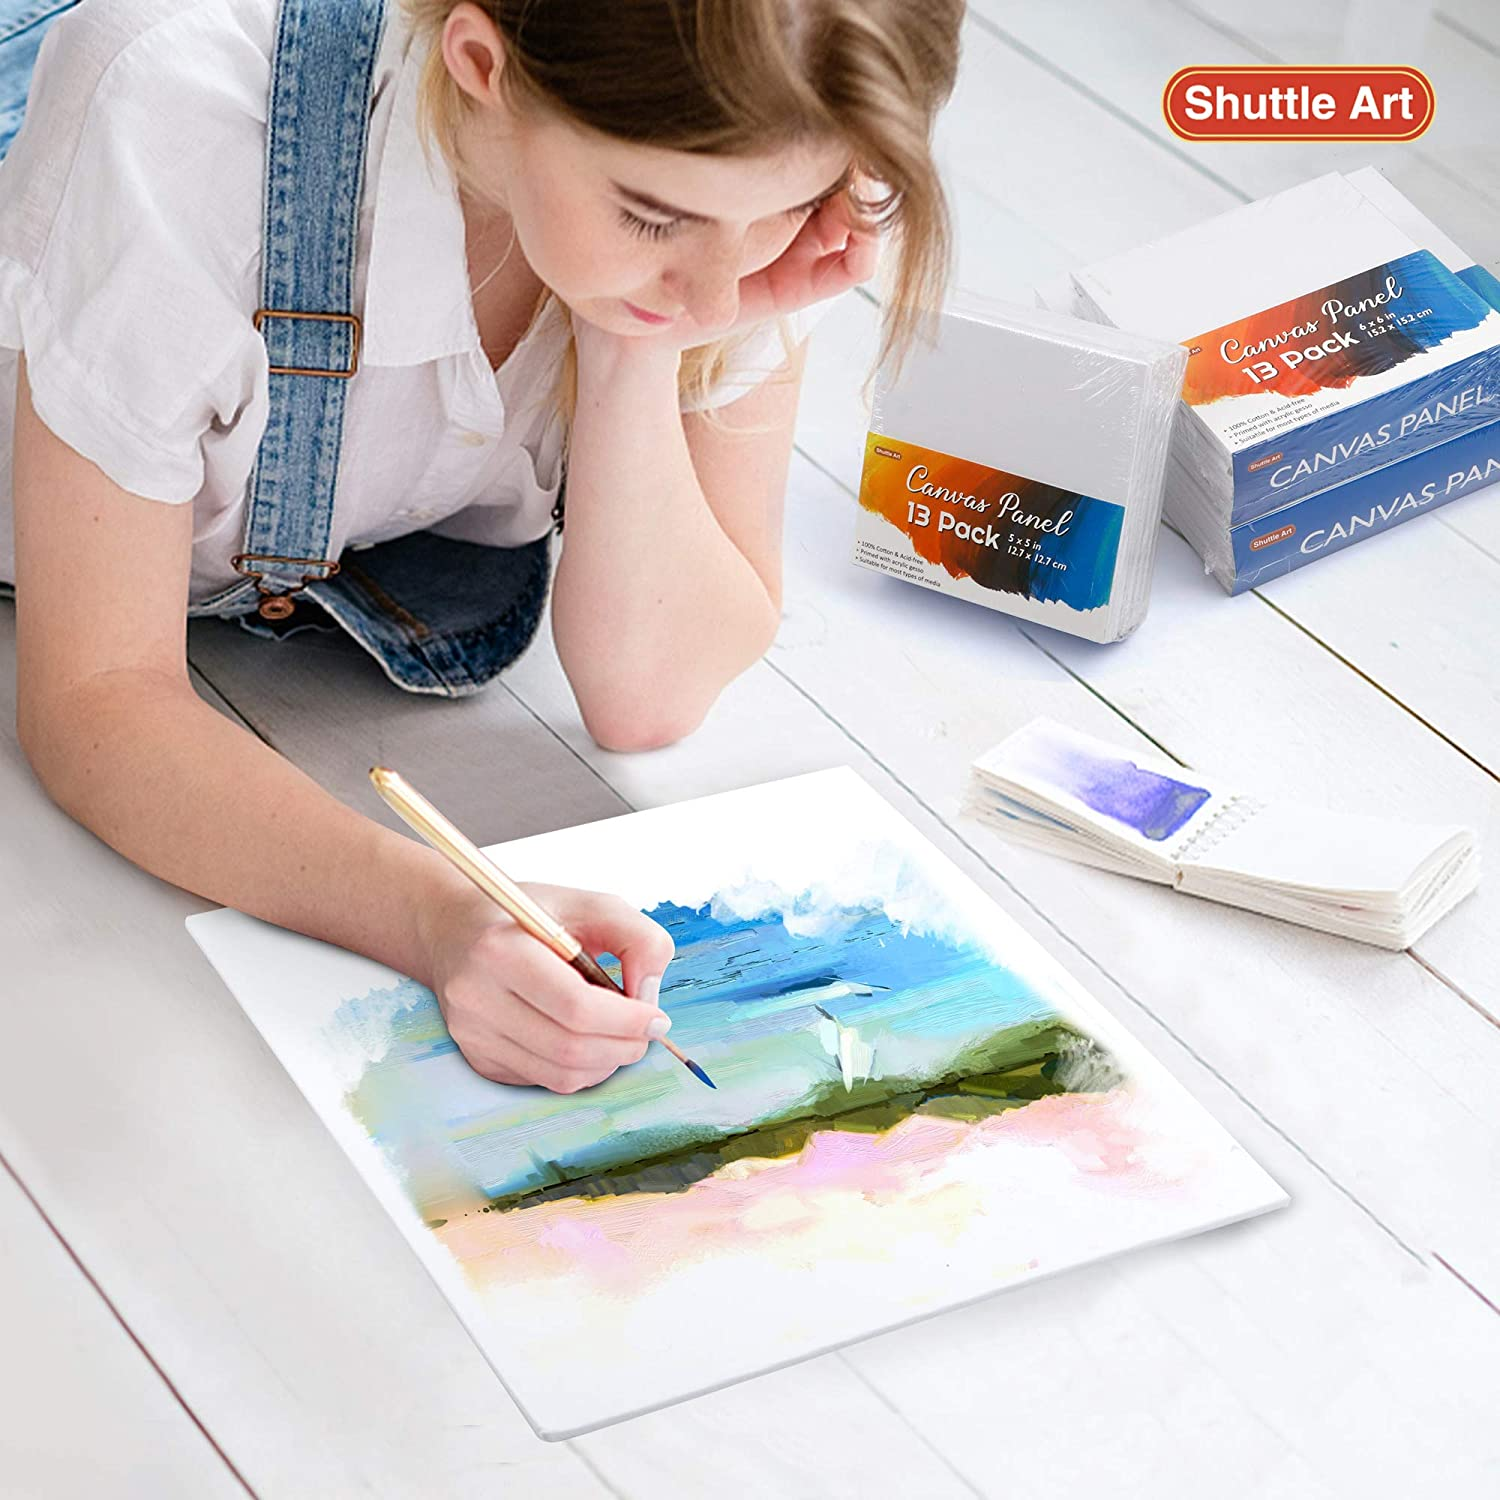 100/% Cotton Art Canvas Board Primed White 52 Multi Pack Blank Canvas for Kids Adults for Acrylic Oil Painting 10x10 inch Shuttle Art Painting Canvas Panel 8x8 5x5 13 PCS of Each 6x6